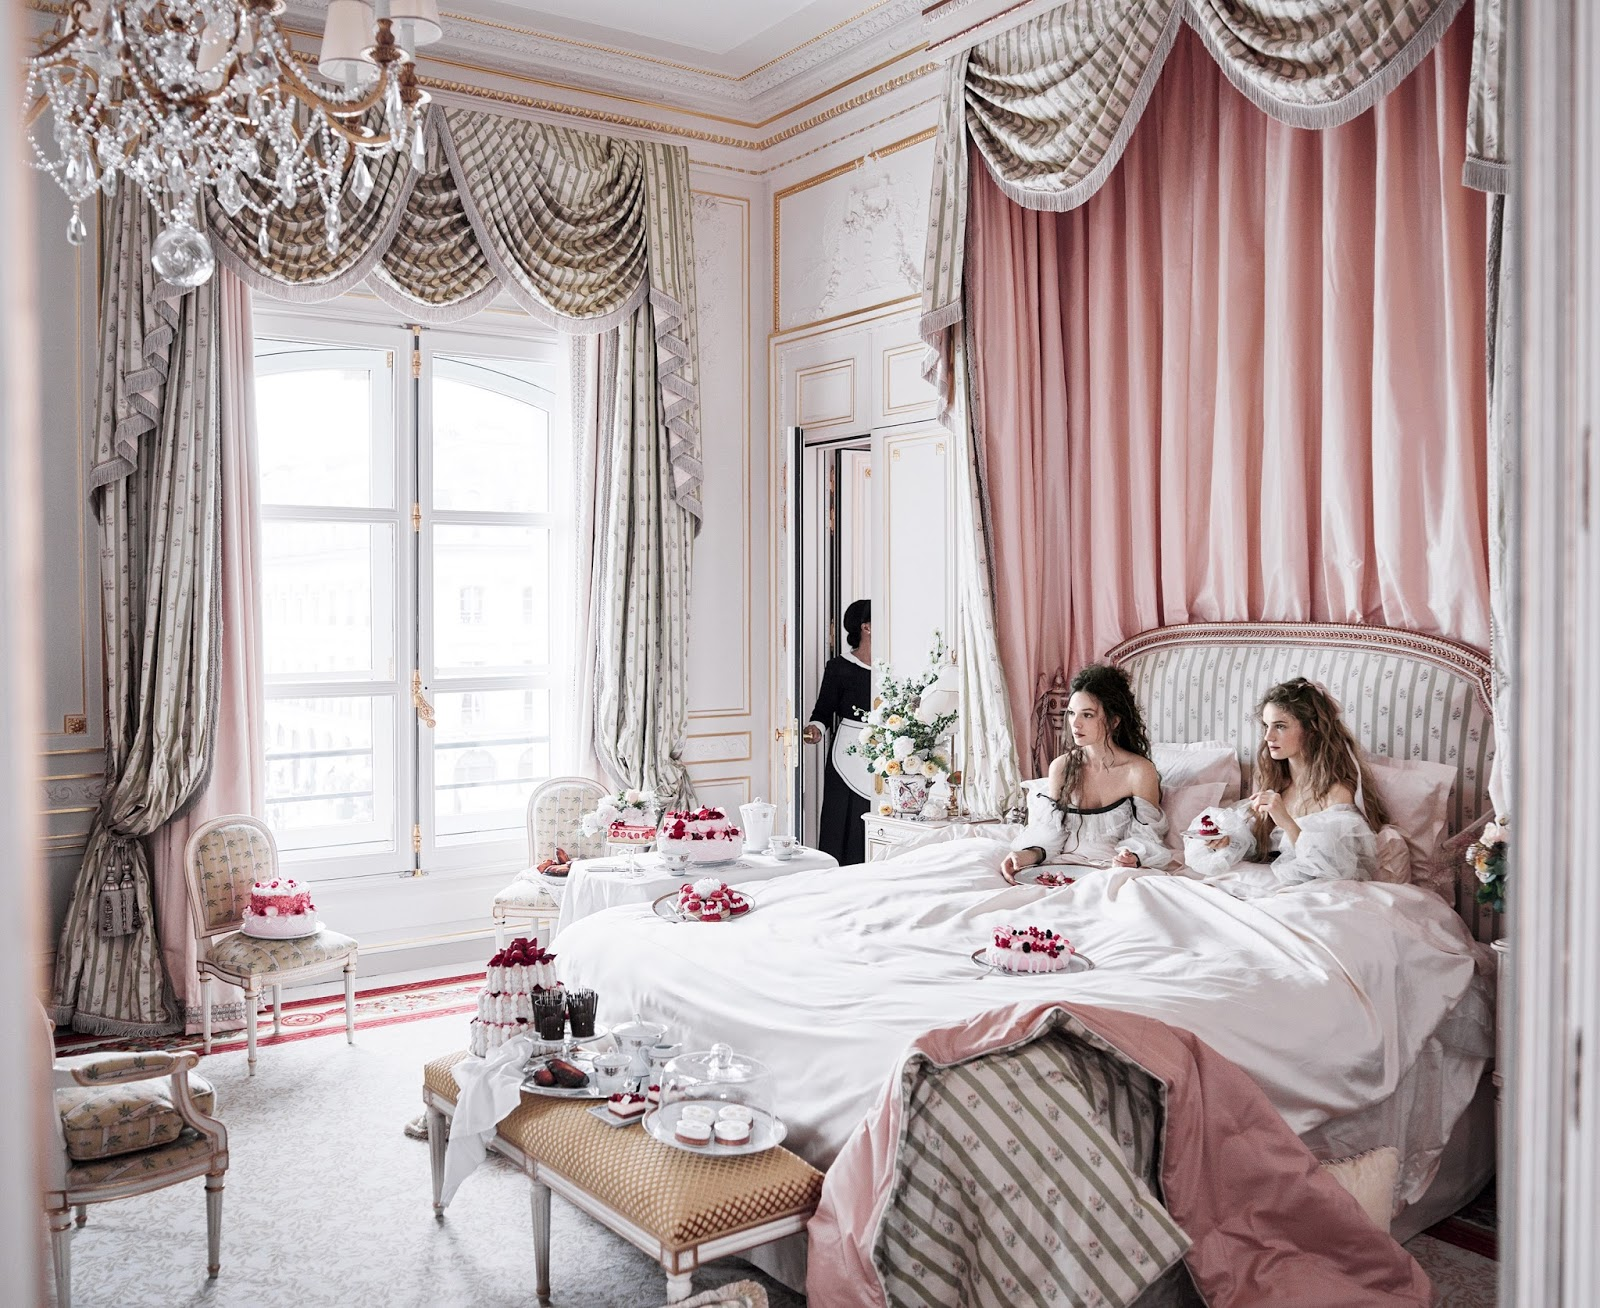 Mikael Jansson for Vogue at Ritz Paris